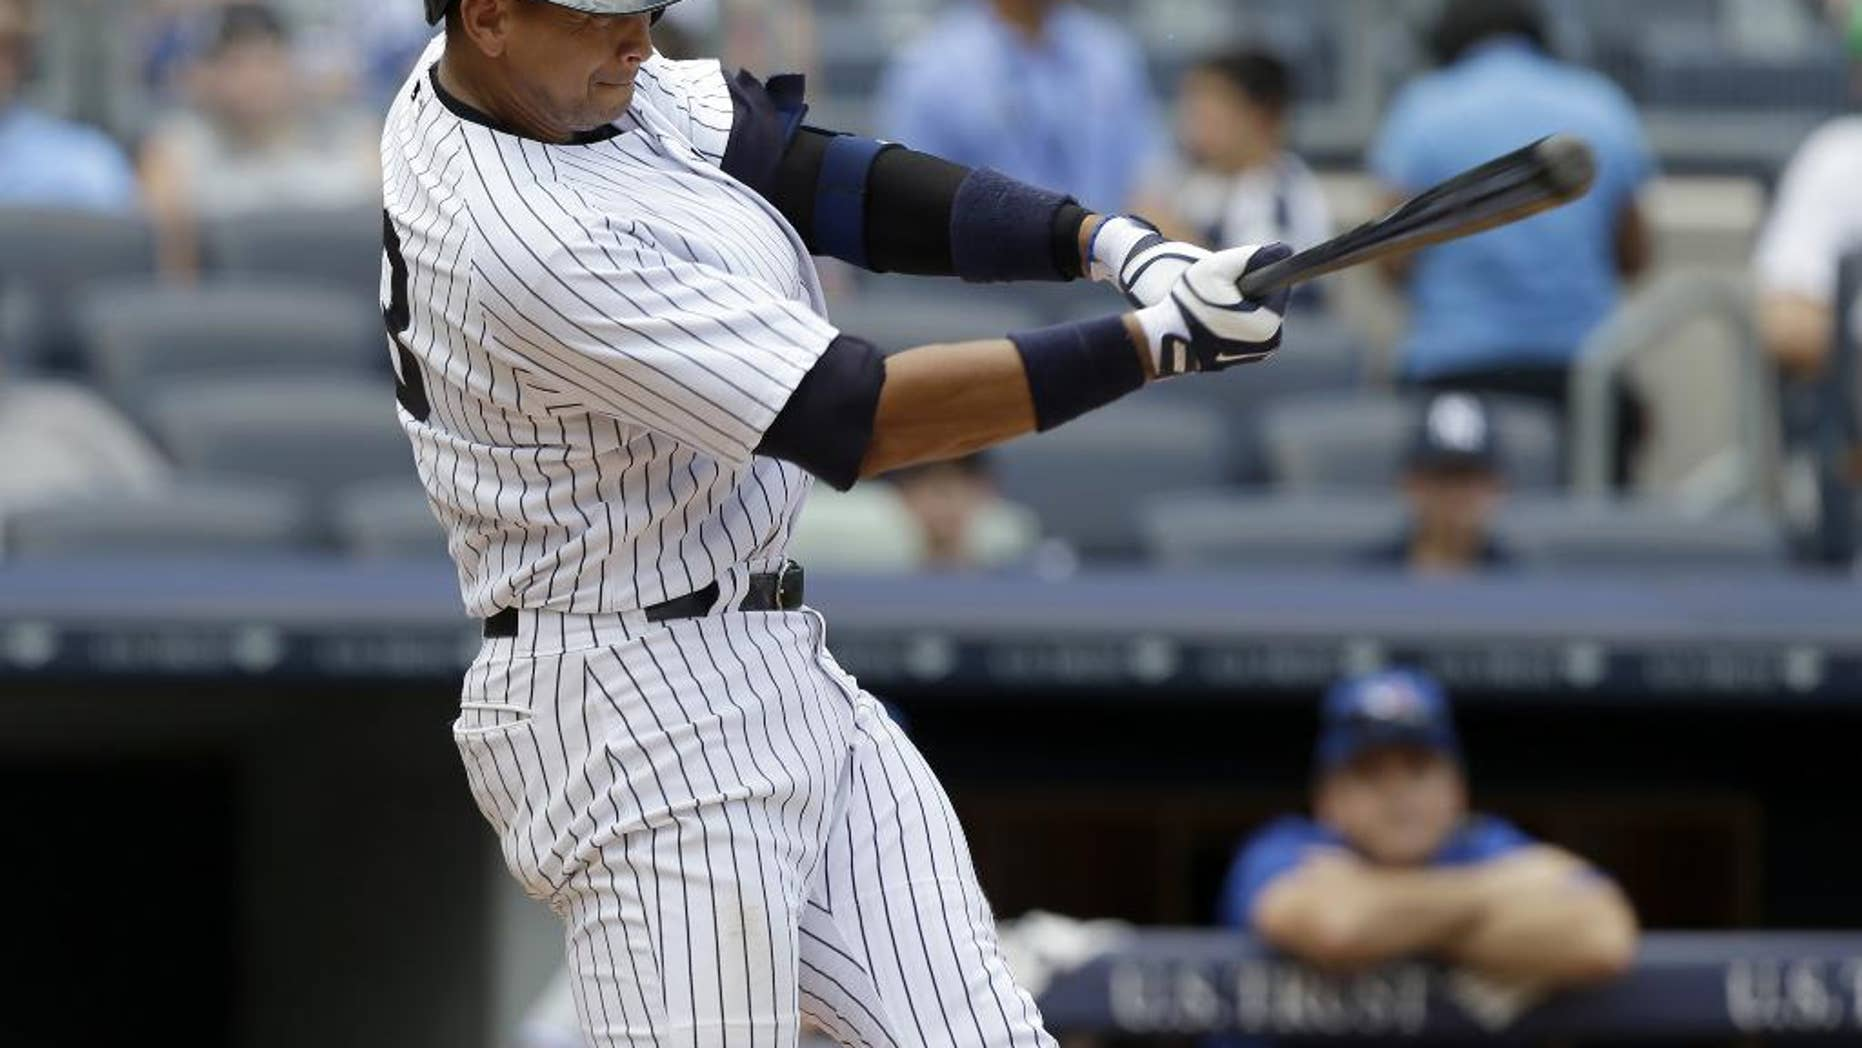 FILE - In a Aug. 20, 2013 file photo, New York Yankees' Alex Rodriguez singles during the sixth inning of the baseball game against the Toronto Blue Jays at Yankee Stadium in New York. Zack Greinke and the Los Angeles Dodgers have knocked Rodriguez and the New York Yankees off baseball's payroll perch. The Dodgers as of Tuesday, March 25, 2014 had a projected payroll of $235 million, according to study of all major league contracts by The Associated Press.(AP Photo/Seth Wenig, File)